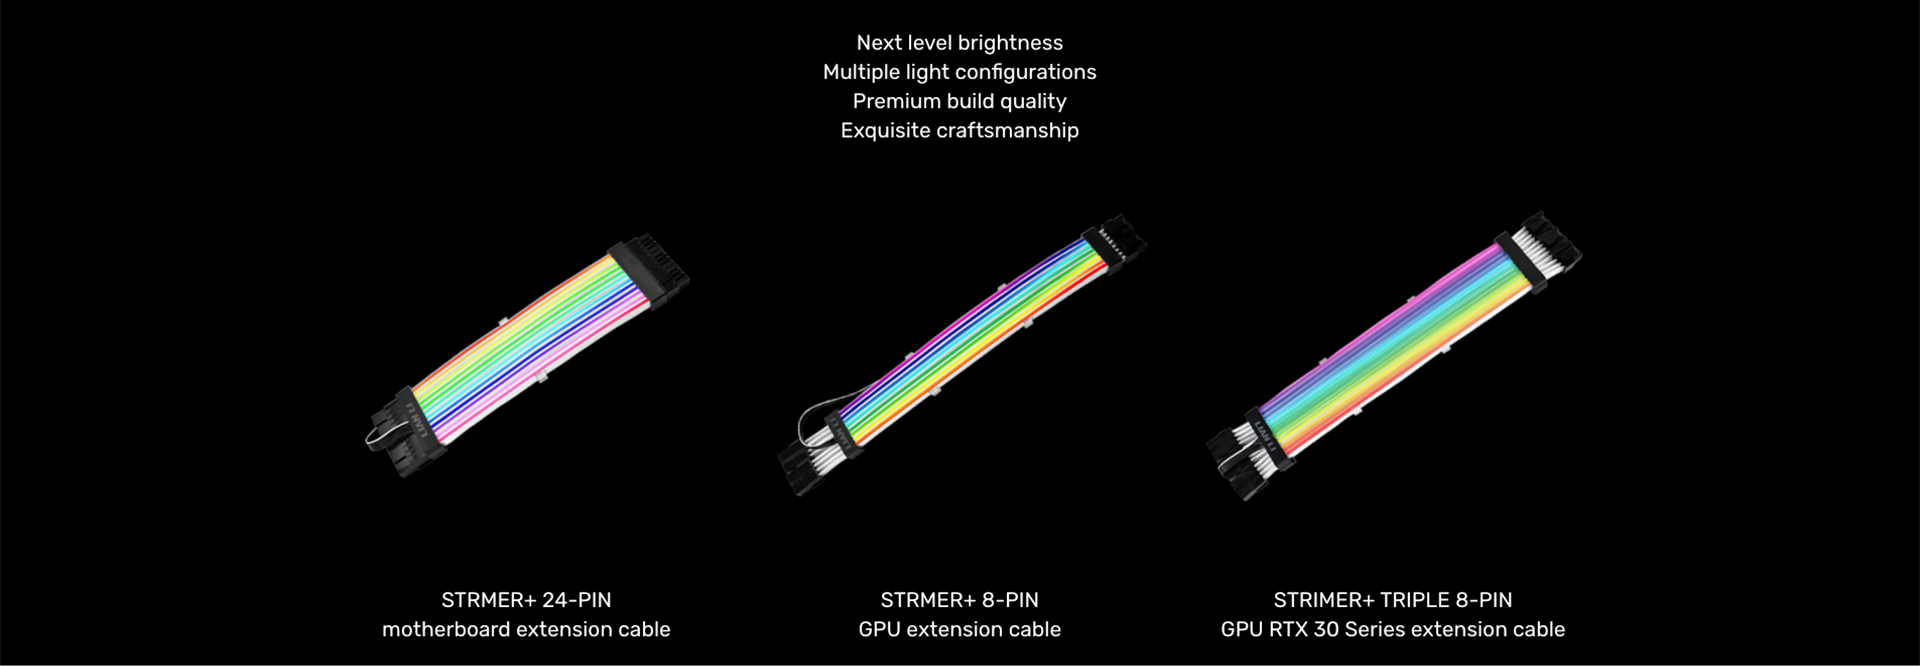 Strimer Plus 24-PIN/ 8-PIN/ TRIPLE 8-PIN - The one and only RGB product you  need.